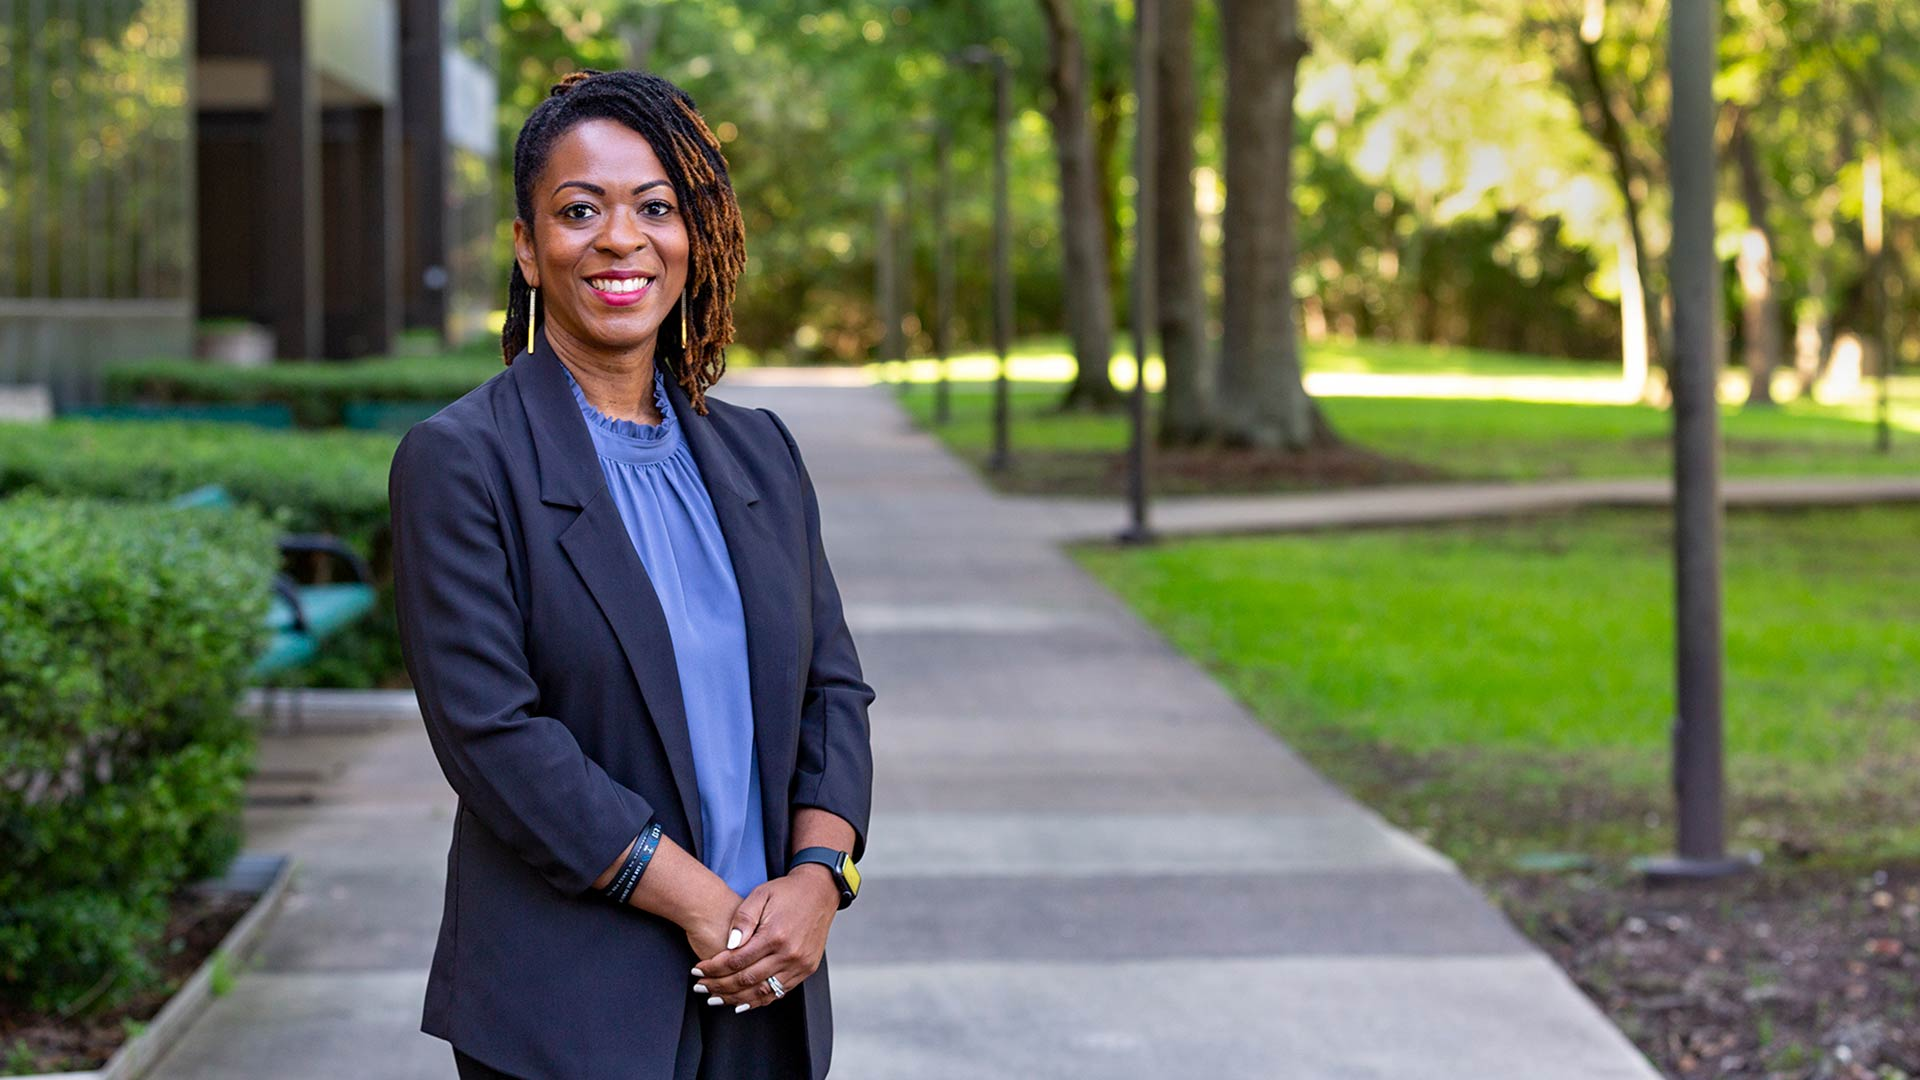 Alum named Principal of the Year, continues to aim high